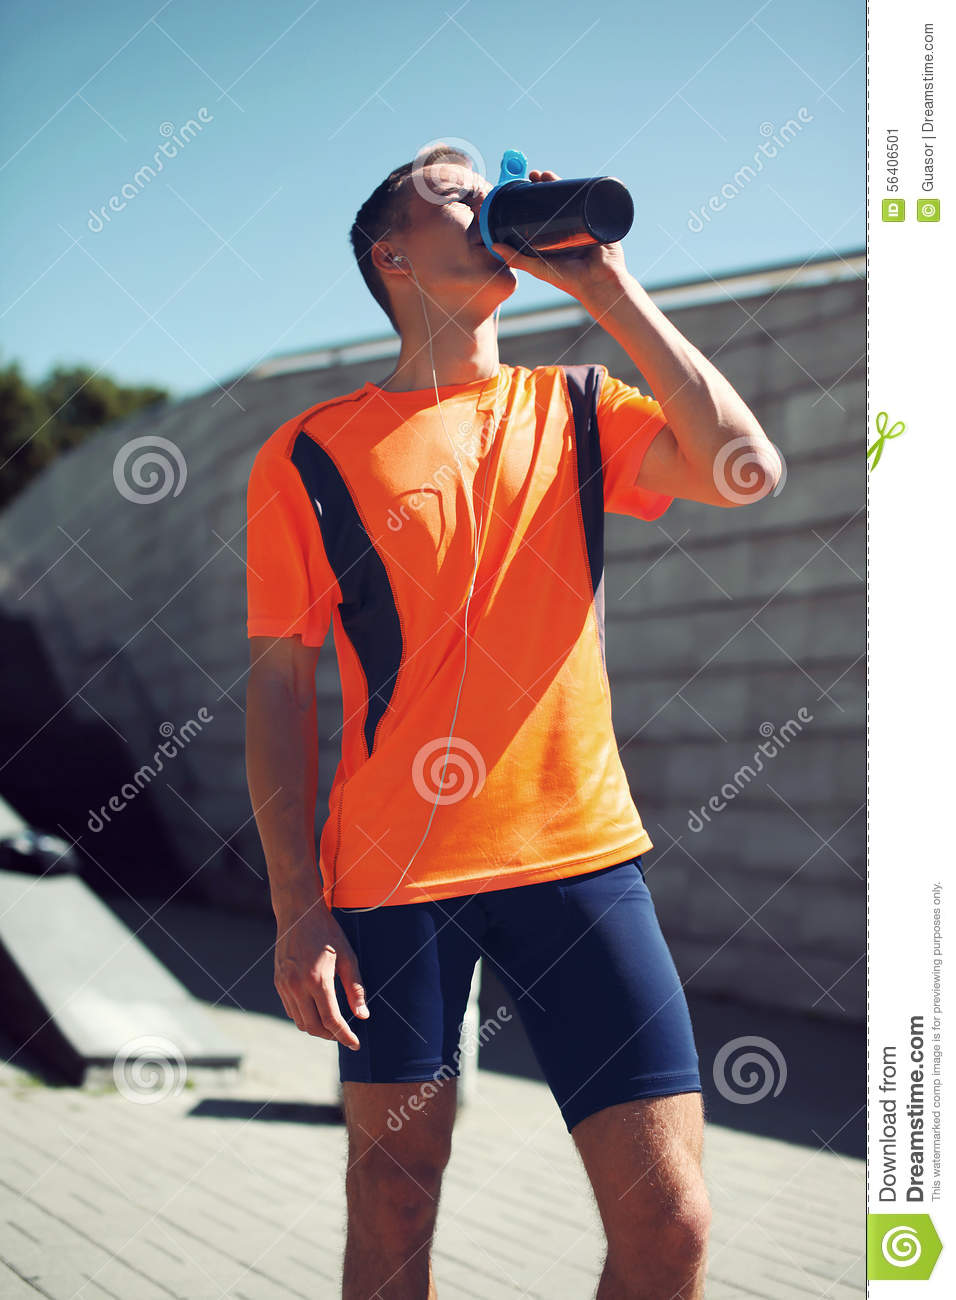 Sport, Sports Nutrition And Healthy Lifestyle Concept Stock Photo - Image: 56406501